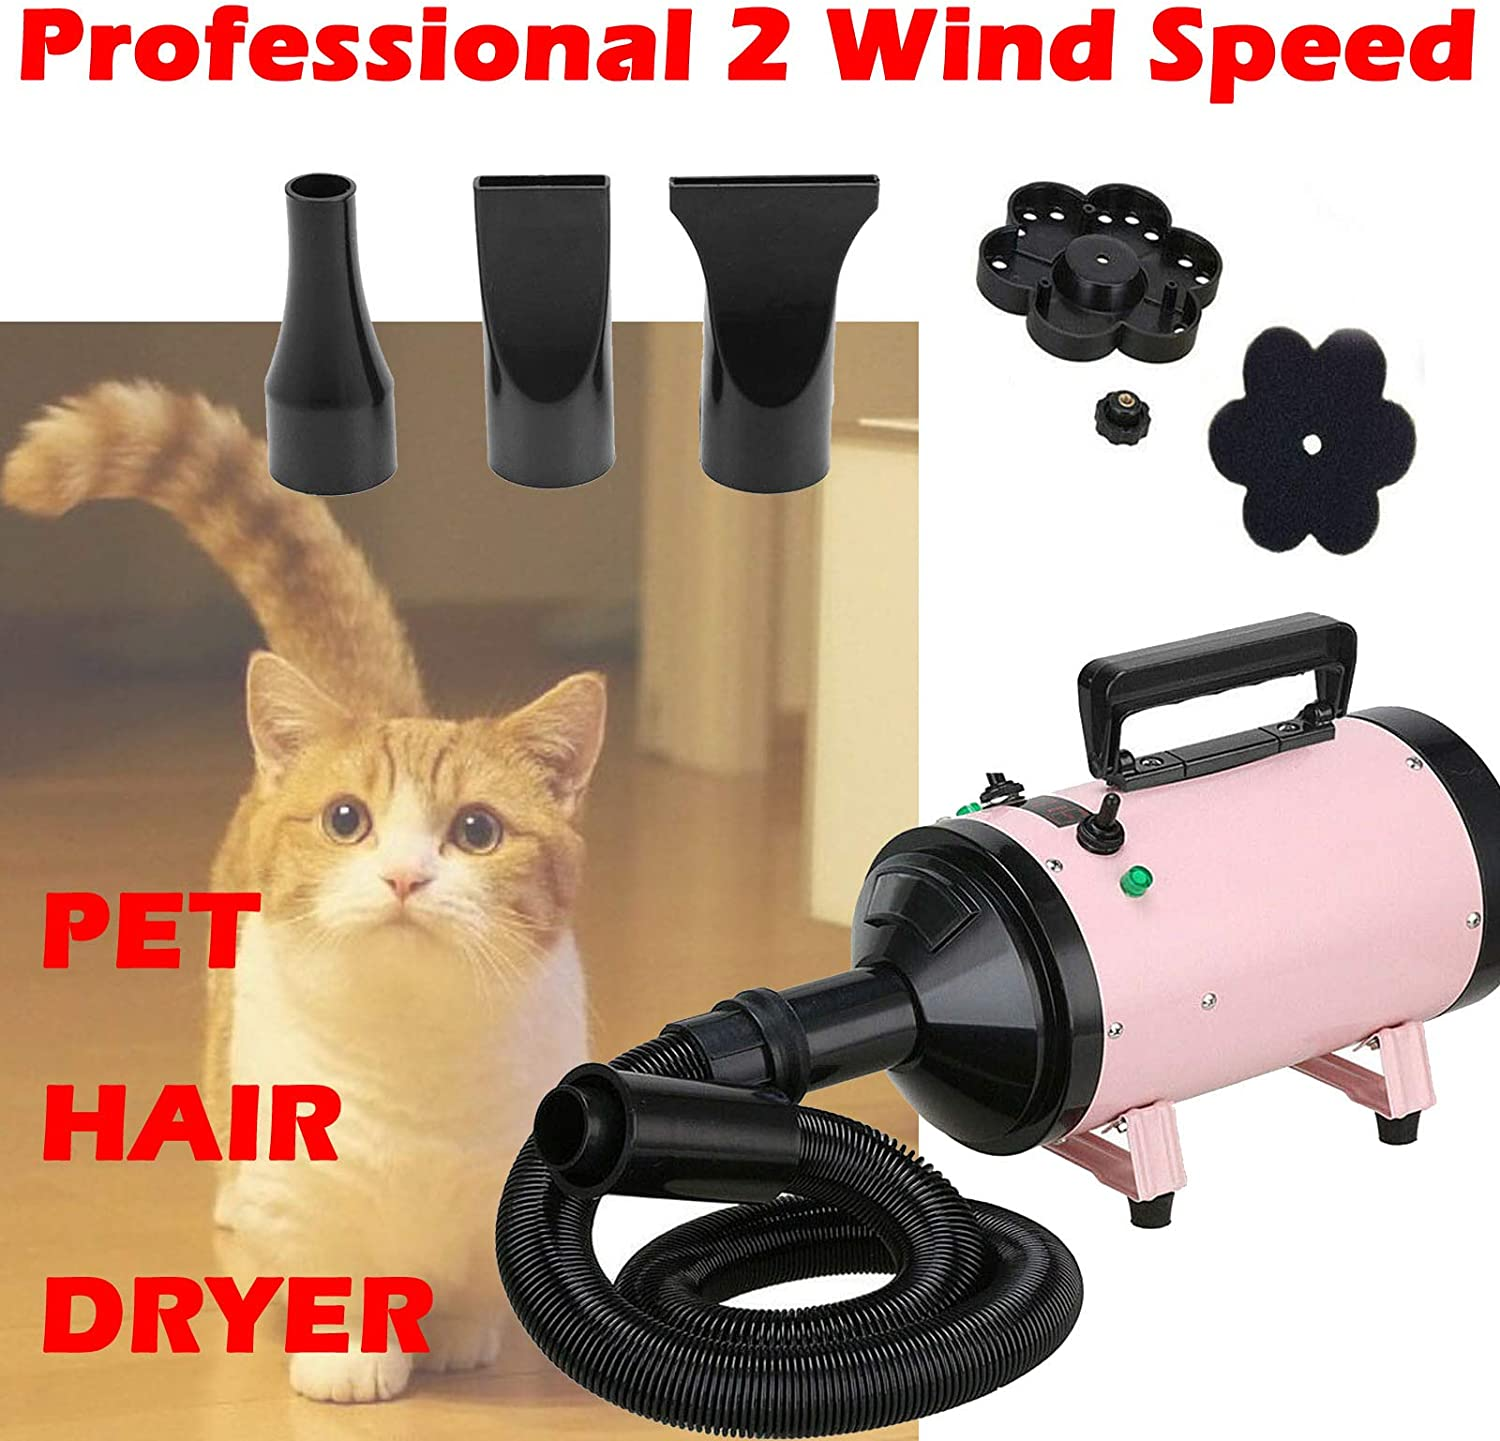 Professional Pet Hair Dryer Cat Dog Grooming Shower Bath Blower Dryer Blaster 2 Wind Speed Safety Heater Low Noise 2.5M Flexible Hose with 3 Nozzles 2800W Pink 1 pcs